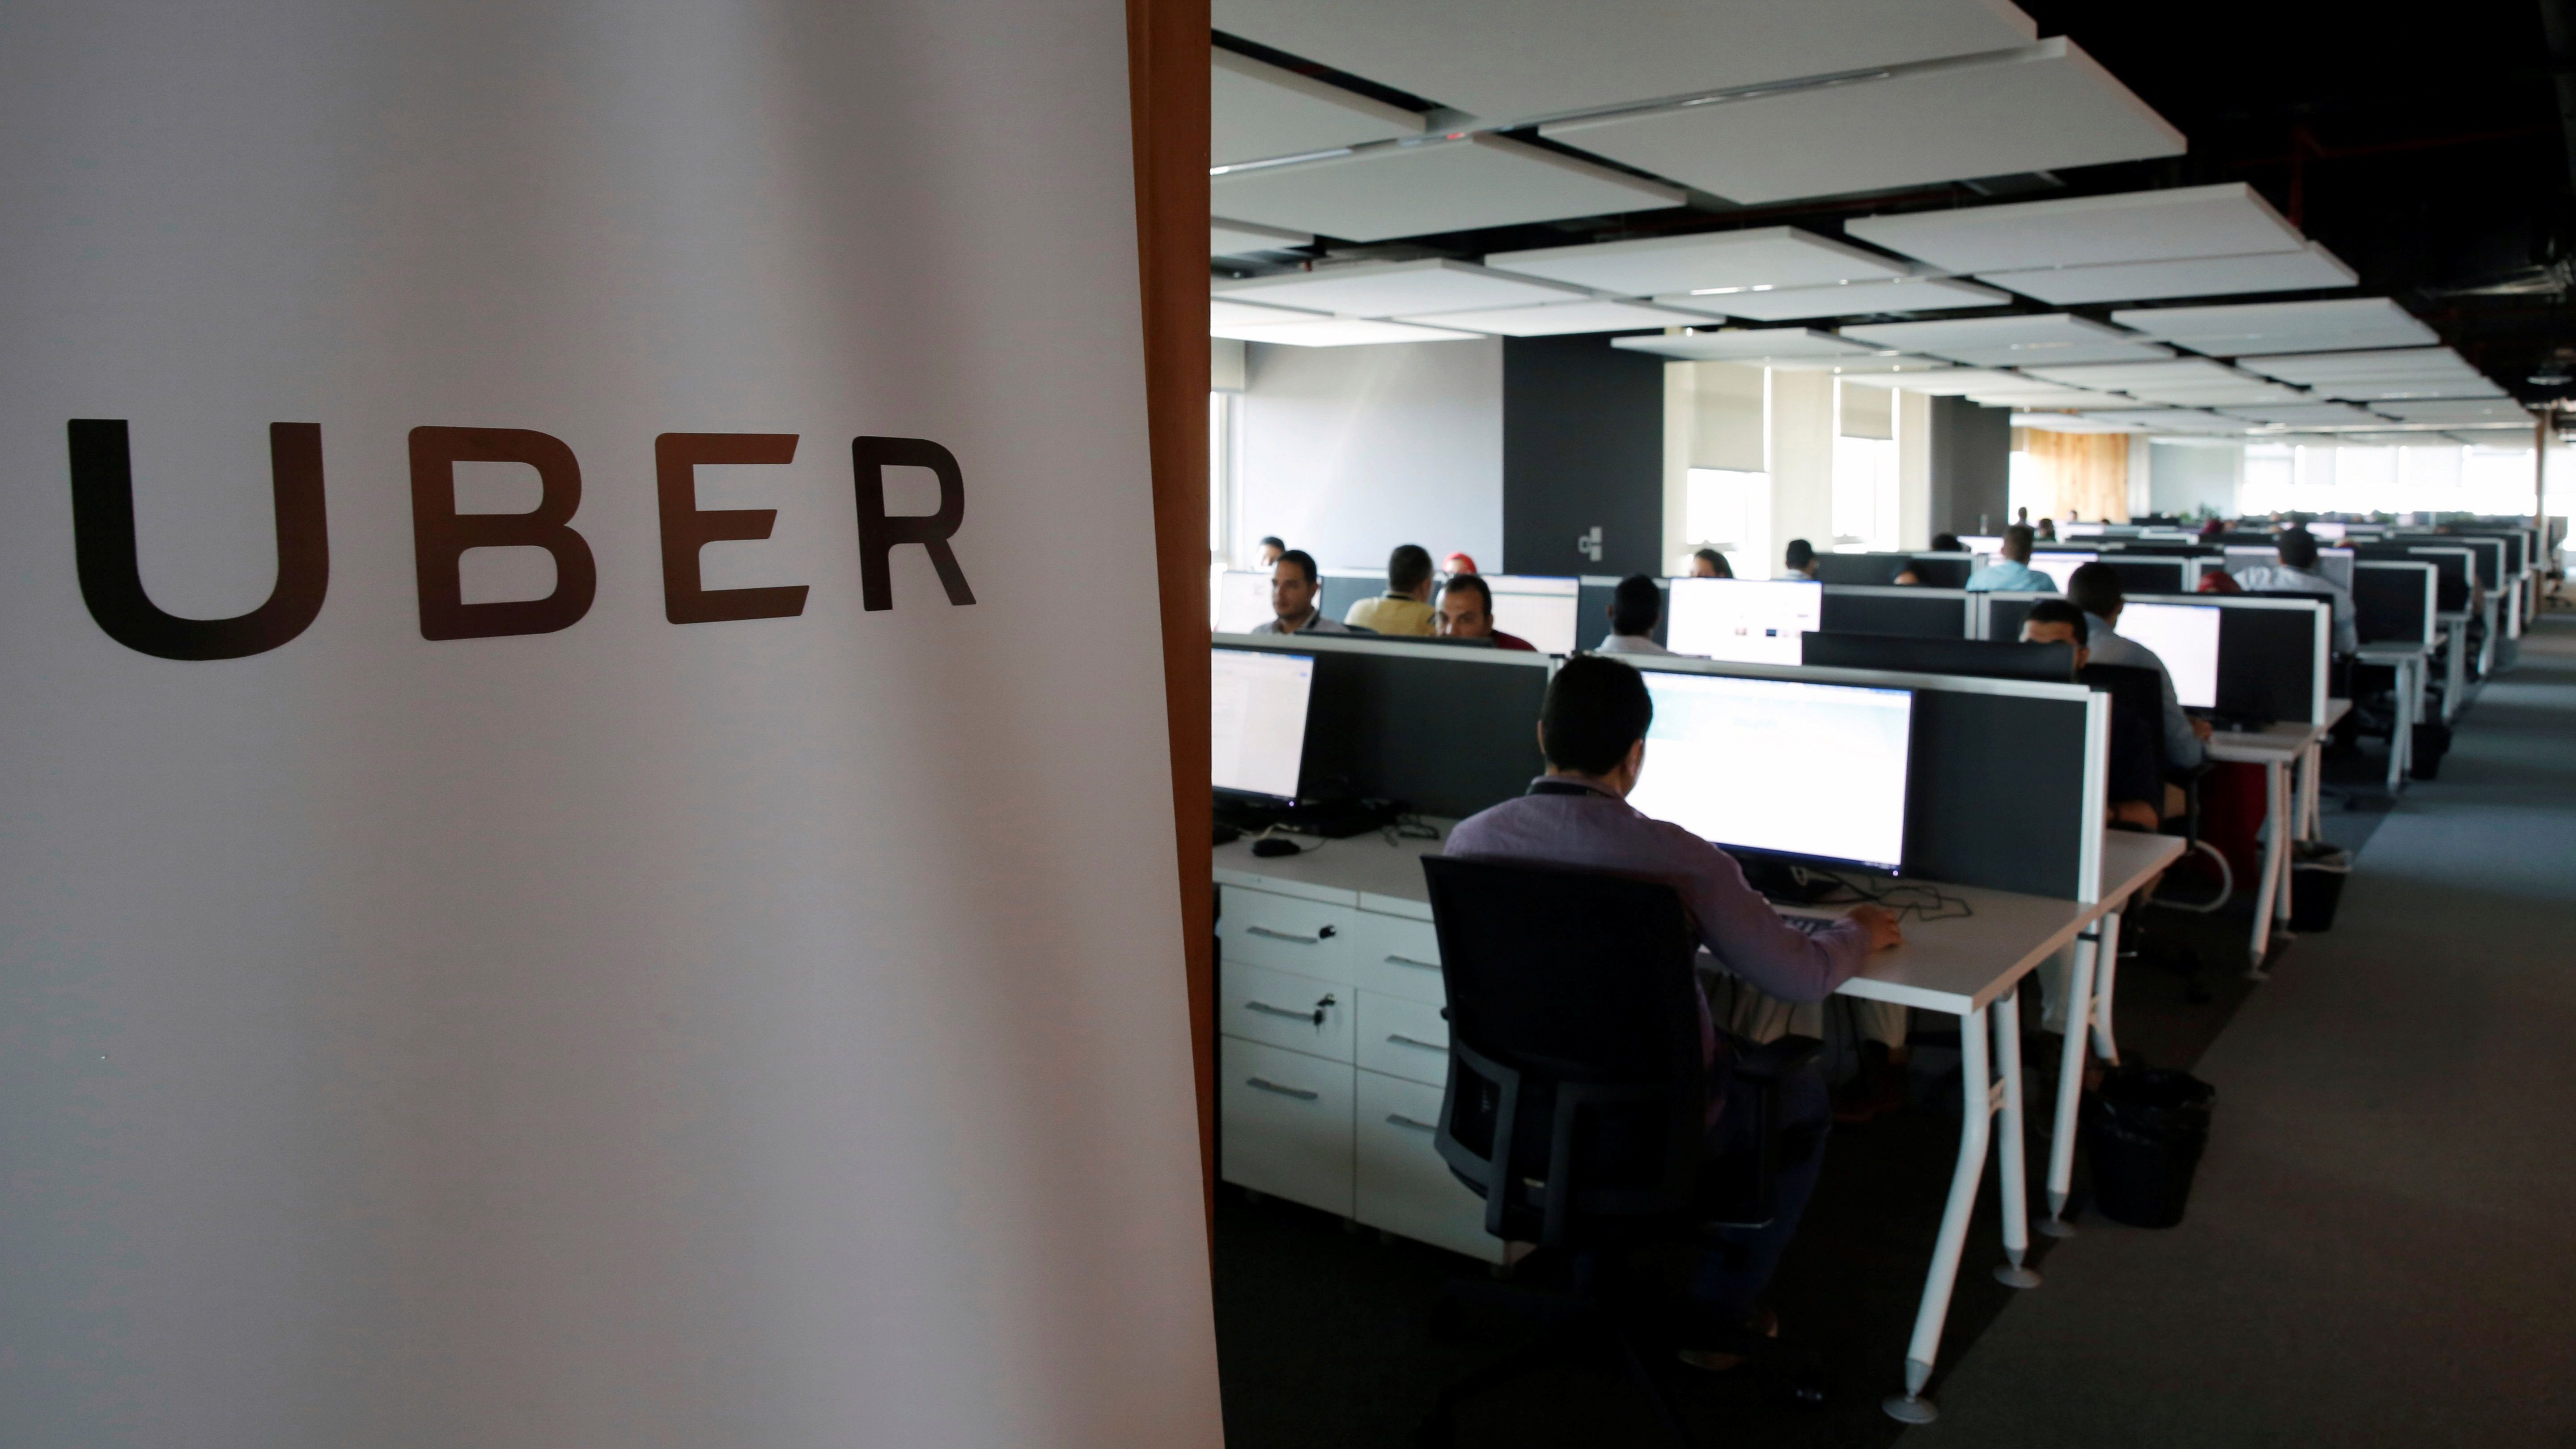 Employees work inside Uber's Centre of Excellence (COE) office in Cairo, Egypt October 10, 2017. REUTERS/Amr Abdallah Dalsh - RC14851C04A0